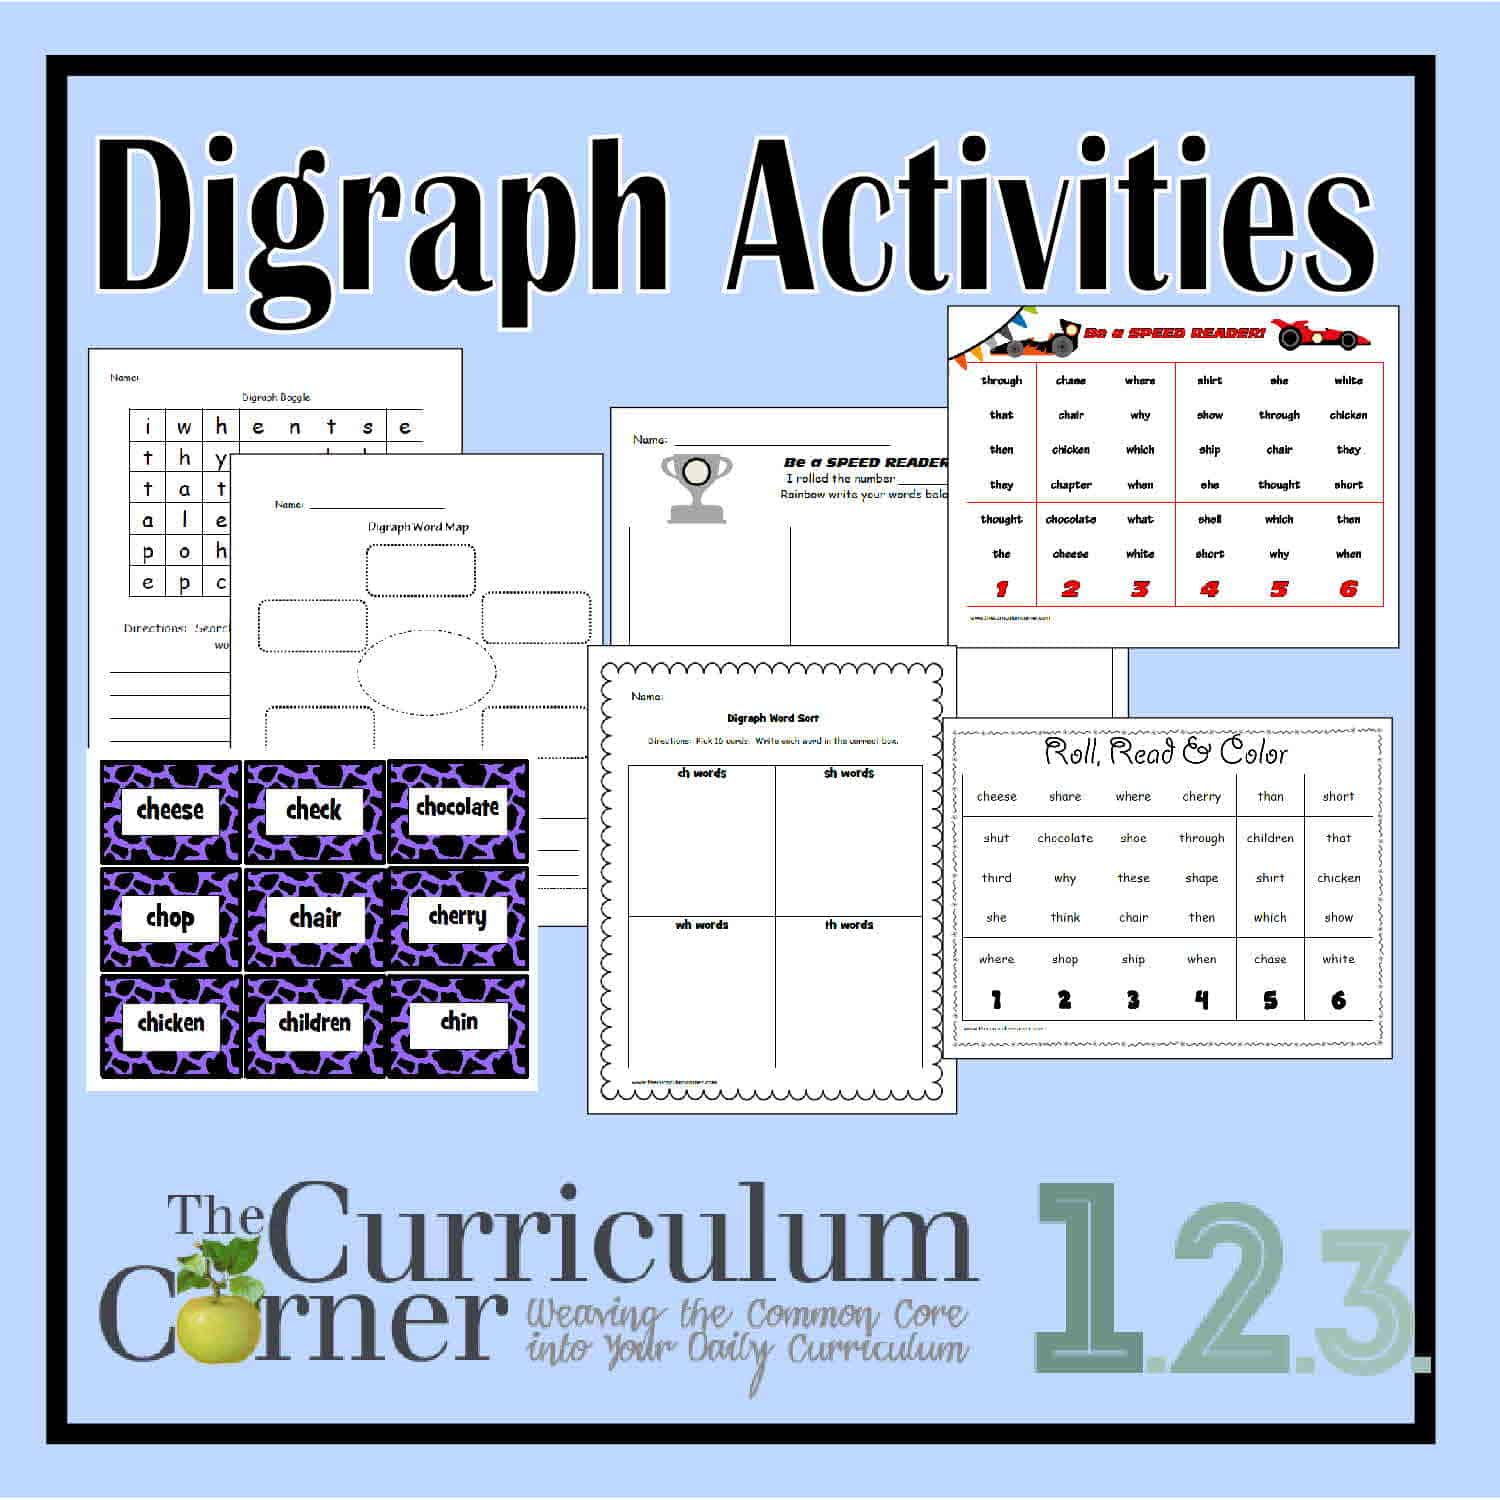 Consonant Digraph Activities The Curriculum Corner 123 – Consonant Digraphs Worksheets